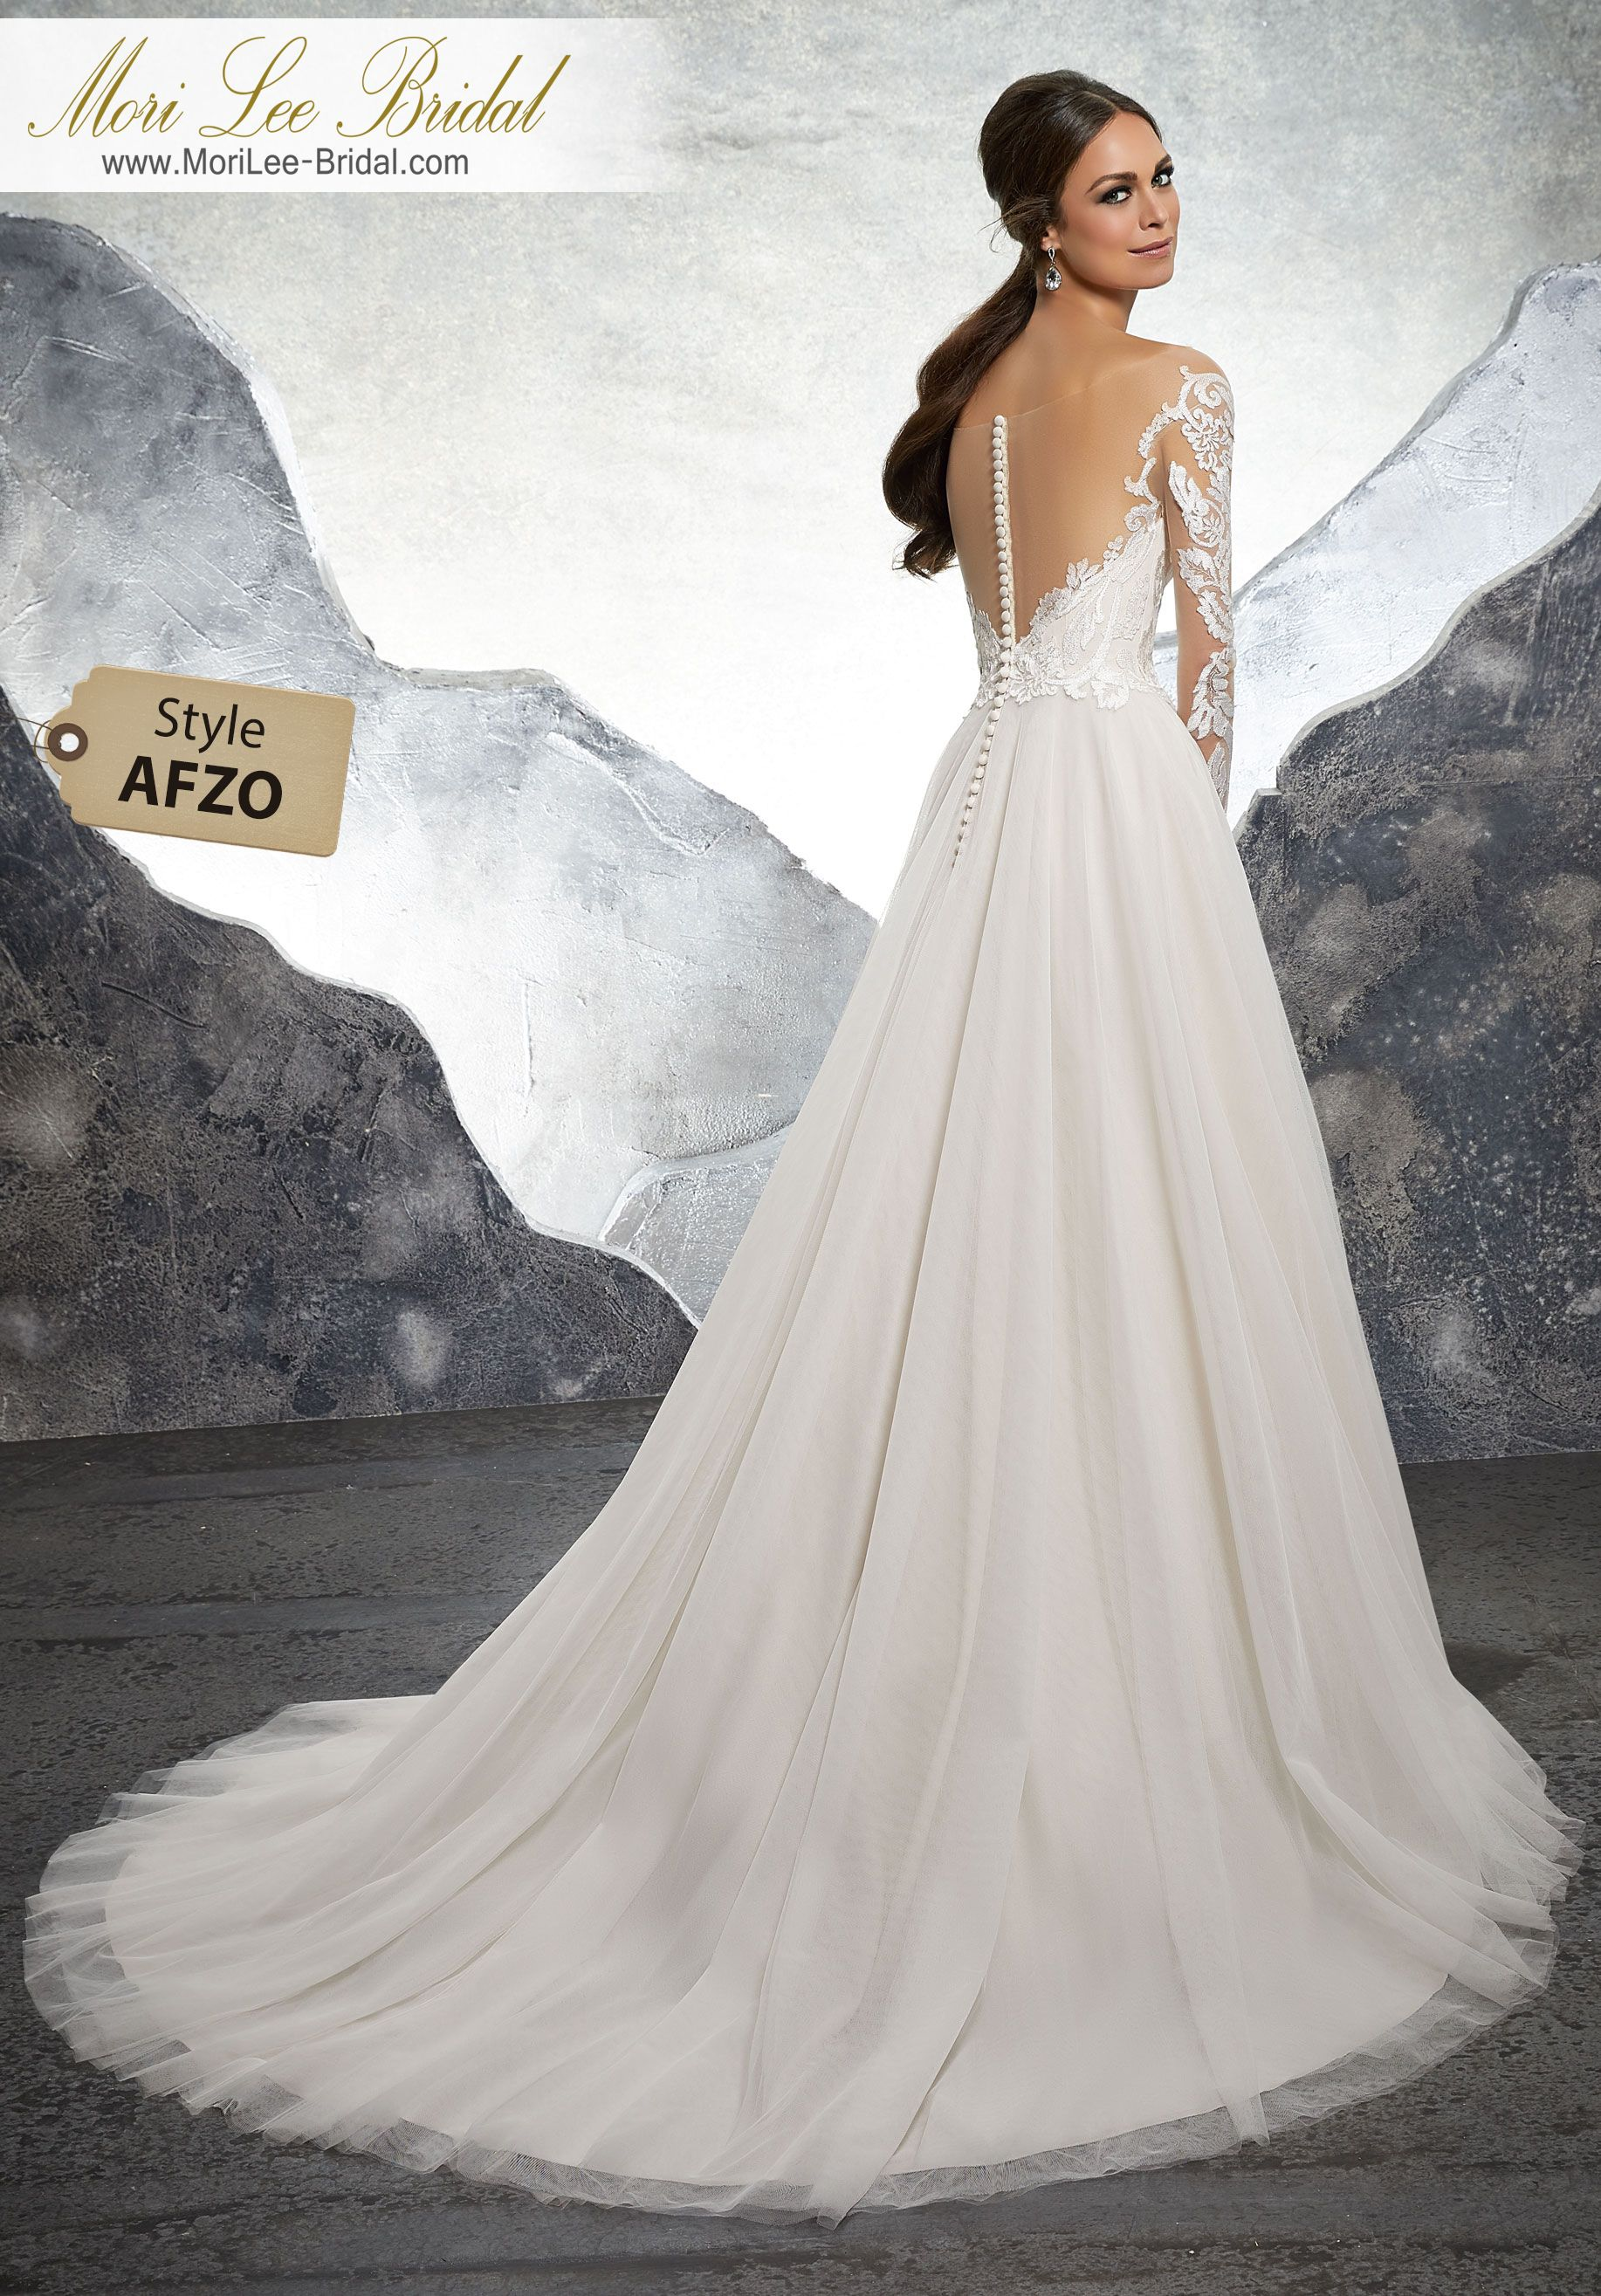 Style afzo kelsey wedding dress striking sculptured embroidery trims